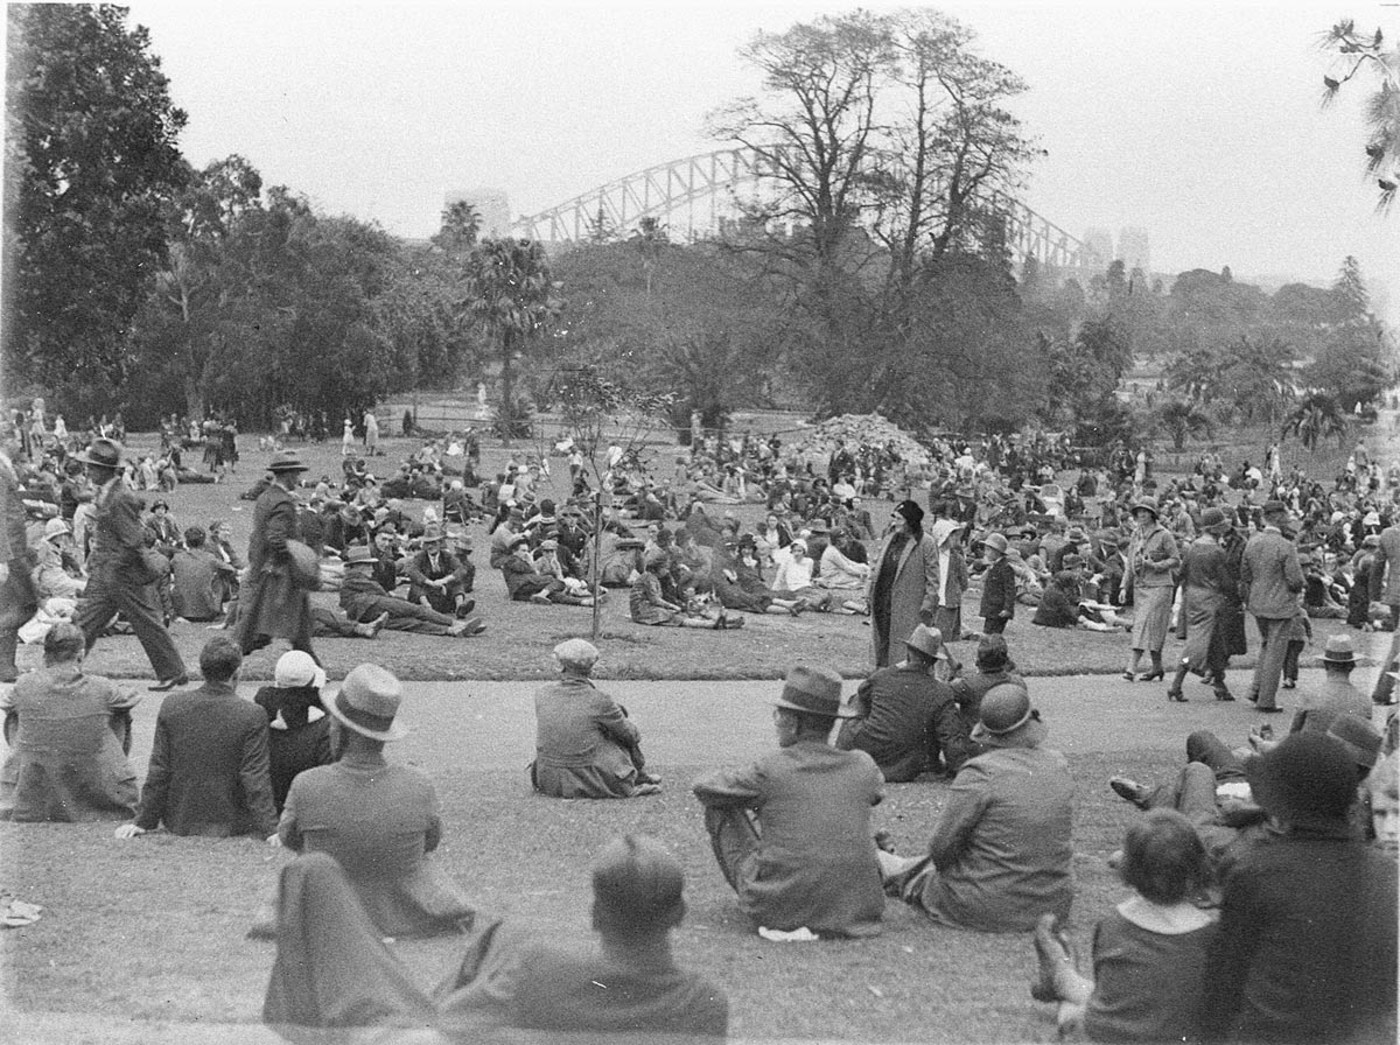 Crowded Botanic Gardens, c. 1930s by Ted Hood